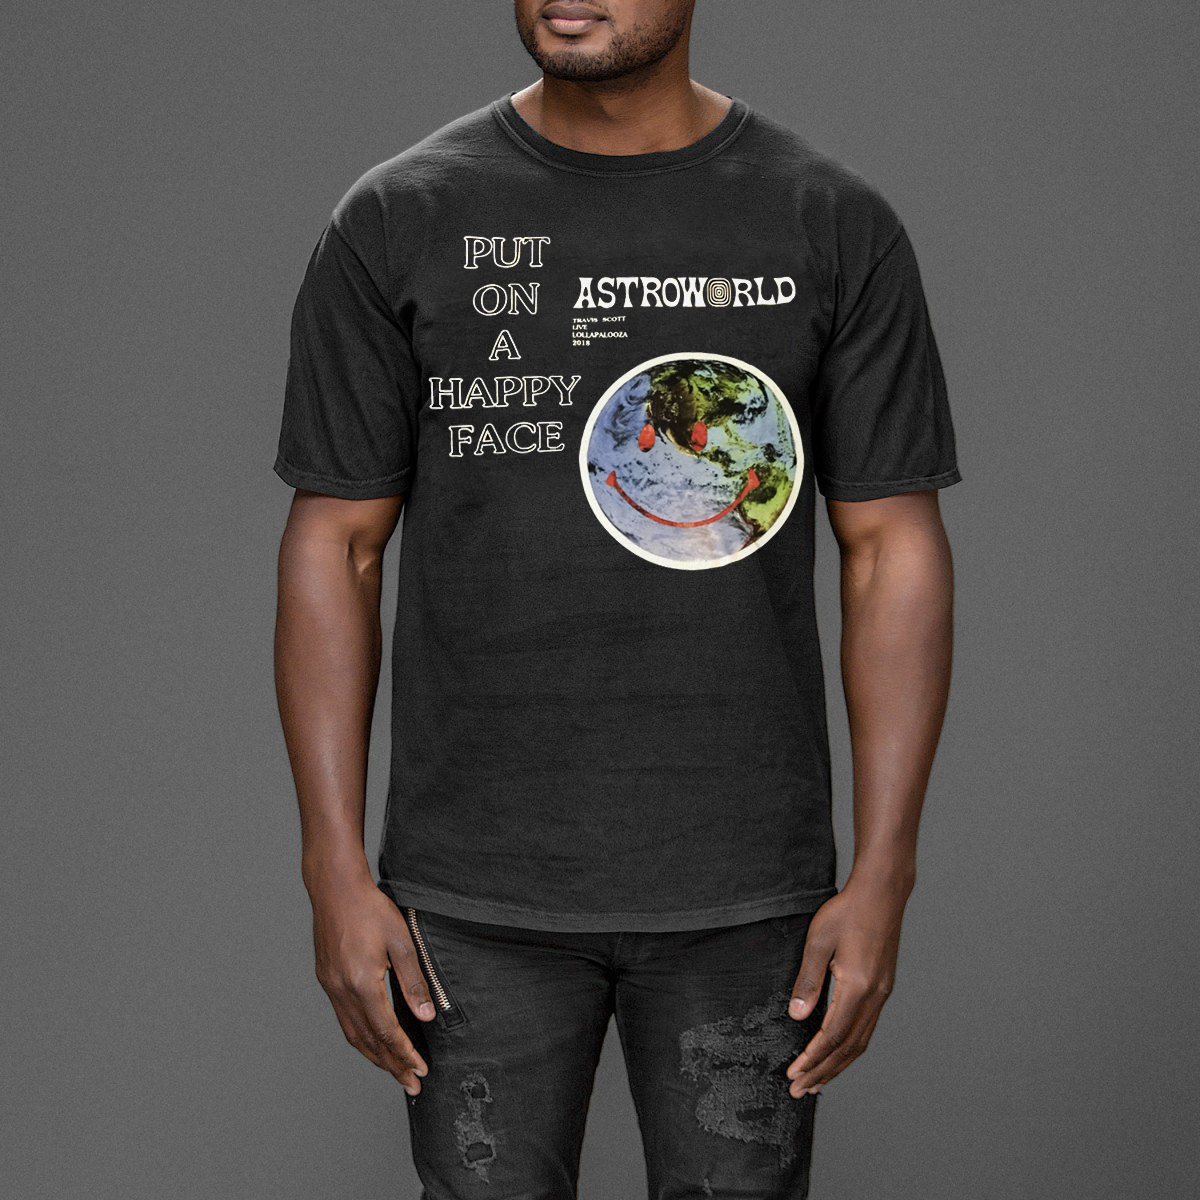 3588e82a315c Summer Top t shirt men As Worn By Kanye West Travisscott Astroworld  Lollapoloza 2019 New T